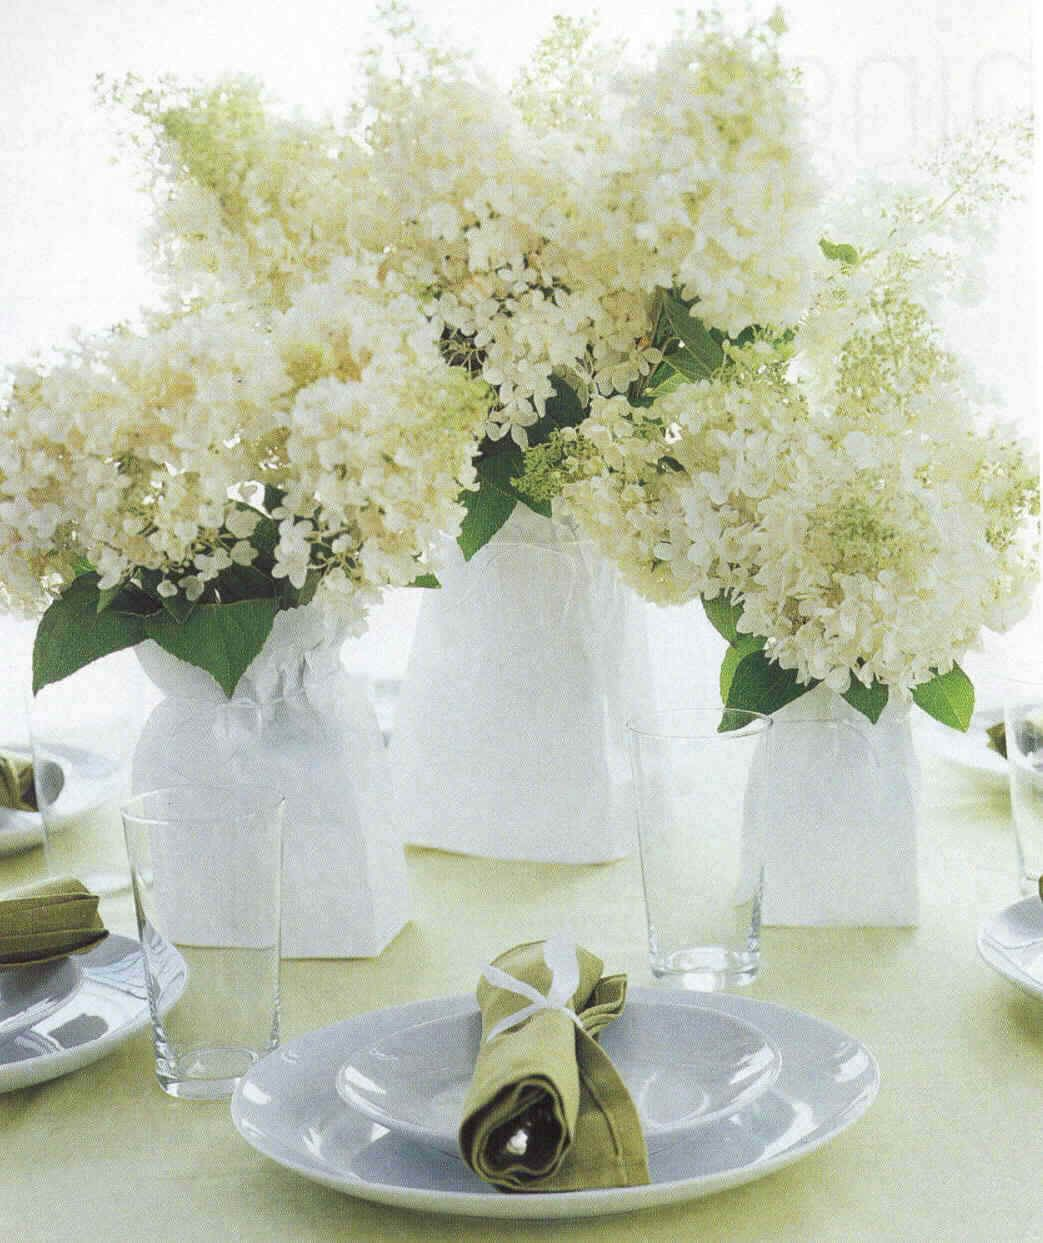 white wedding flower arrangements 11 | Wedding Flower Ideas ...